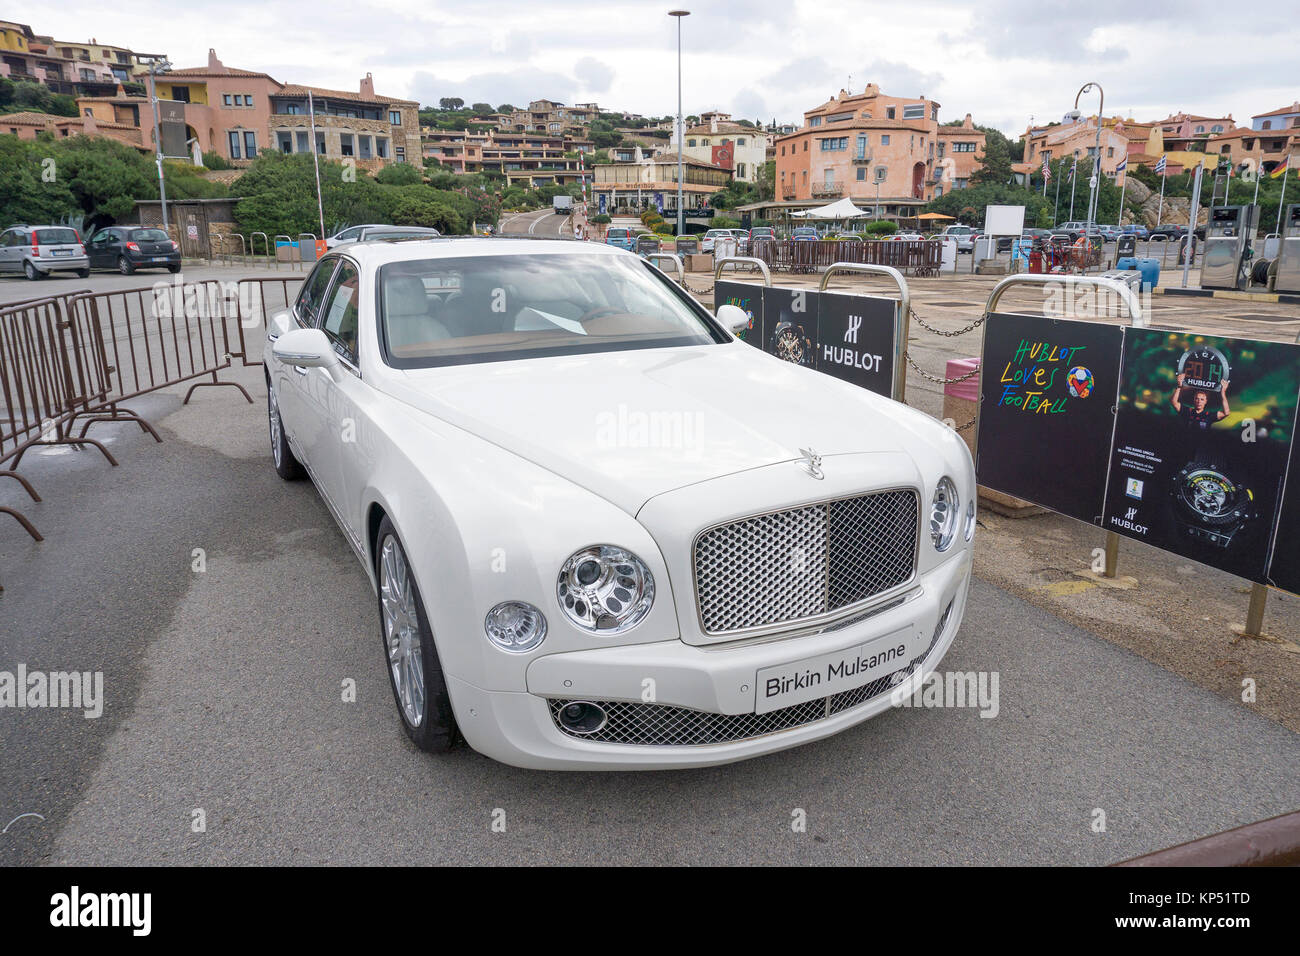 The Bentley Mulsanne S Very Limited: Mulsanne Stock Photos & Mulsanne Stock Images